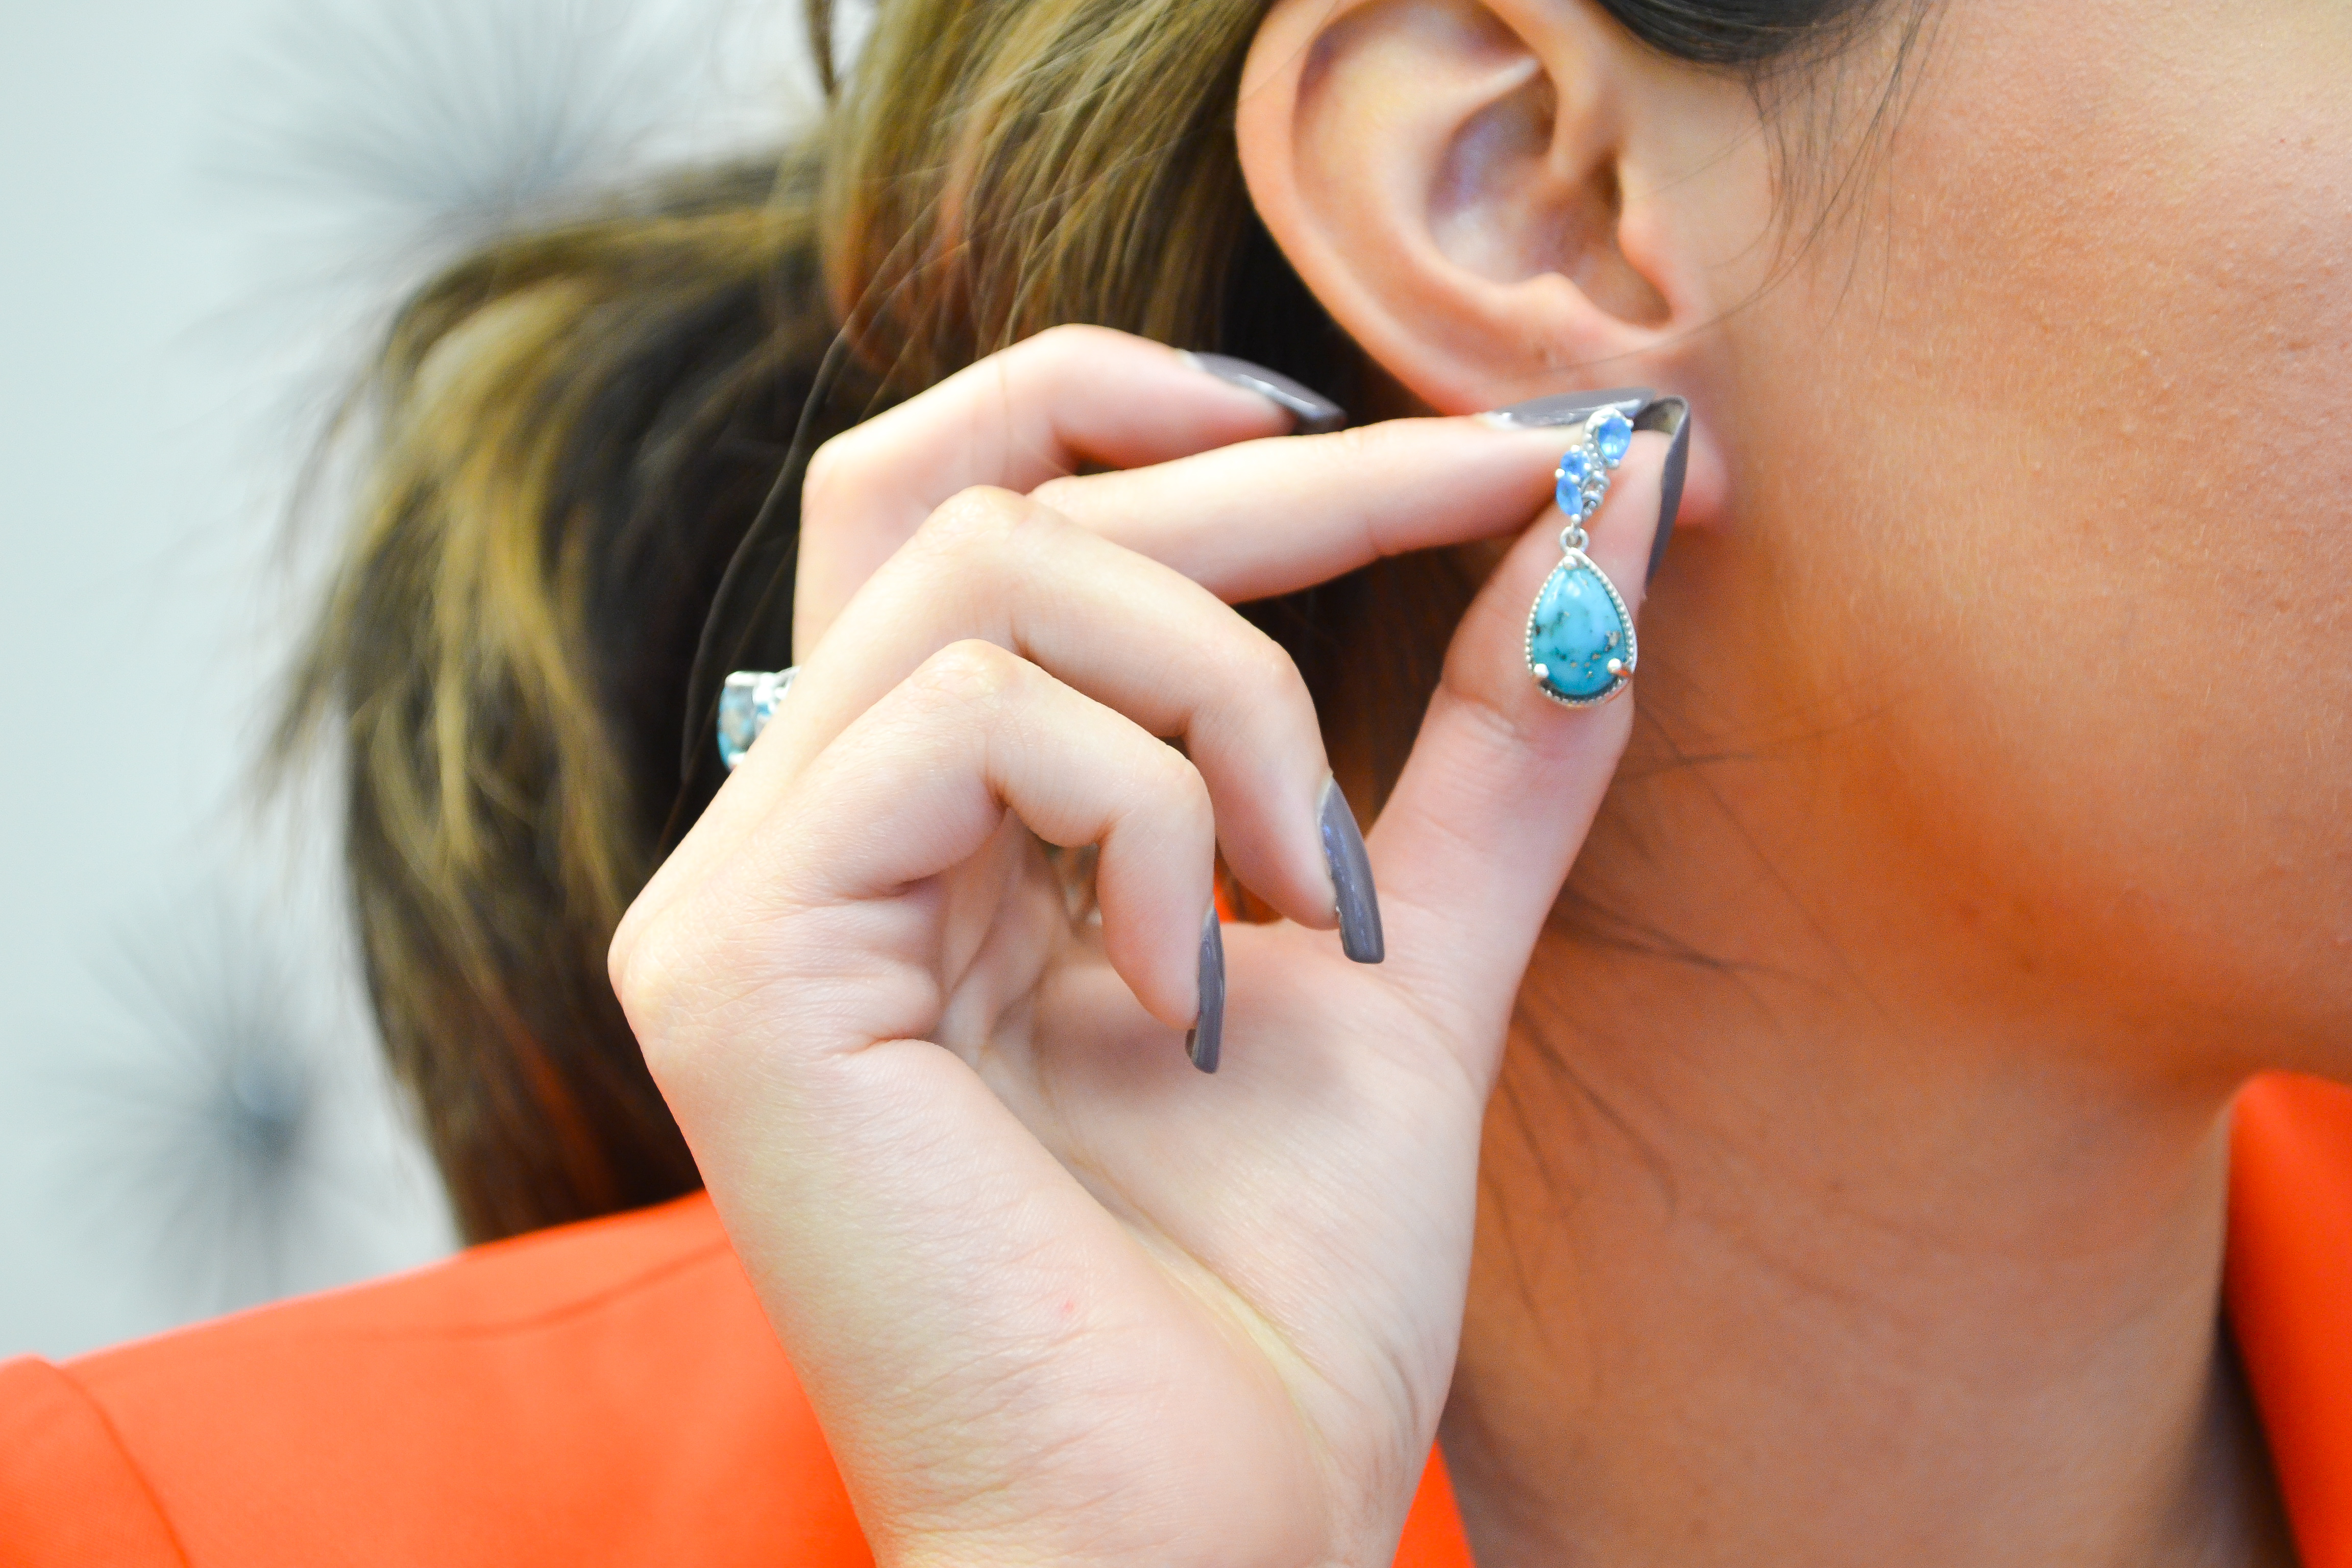 Woman in coral blazer trying on turquoise earrings.